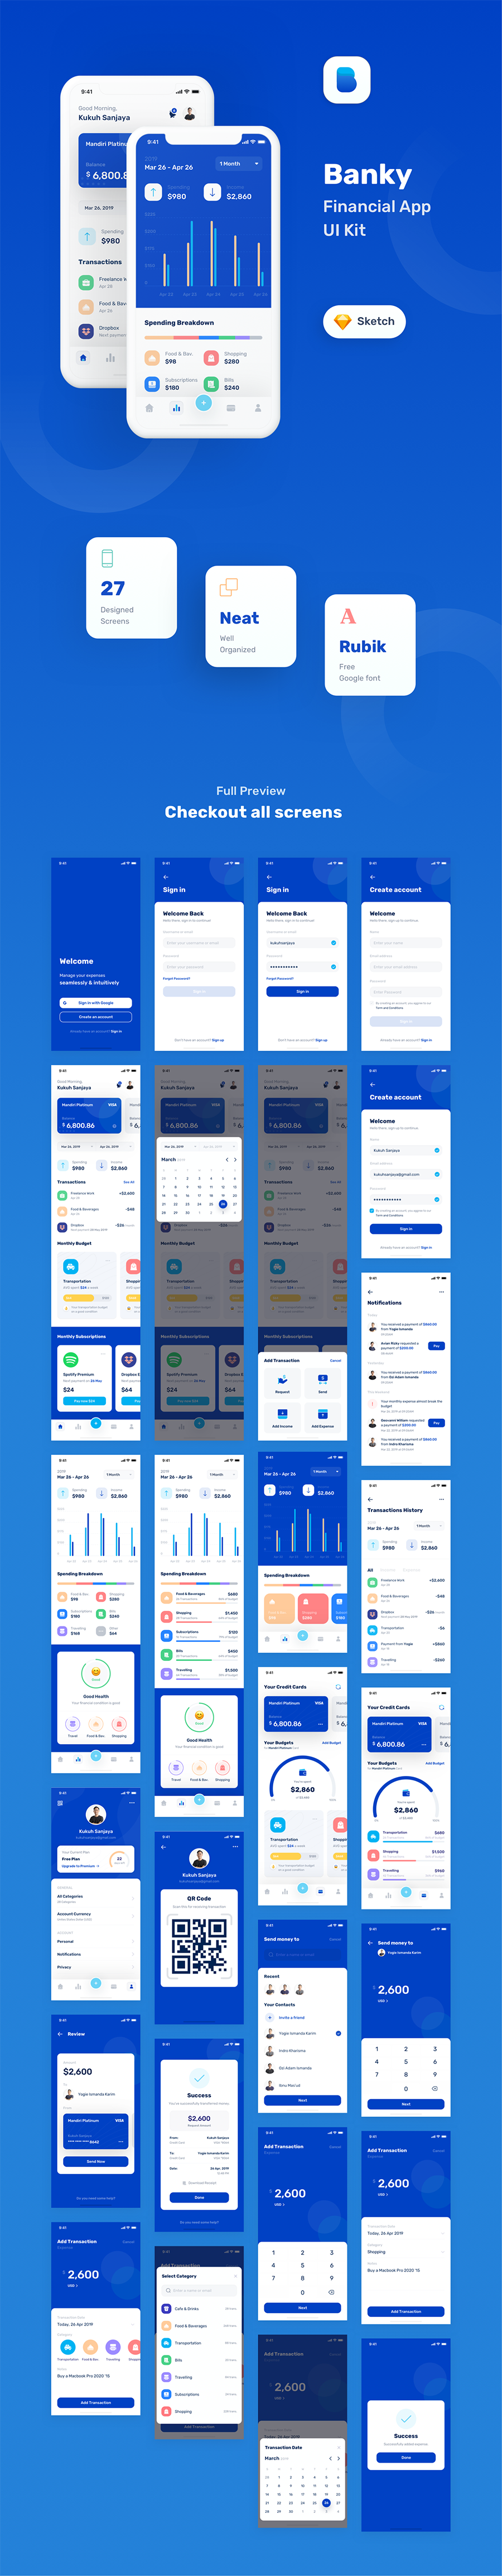 iOS 金融 APP UI KIT 套装模板下载 iOS Ui app设计 Banky - Finance App UI Kit